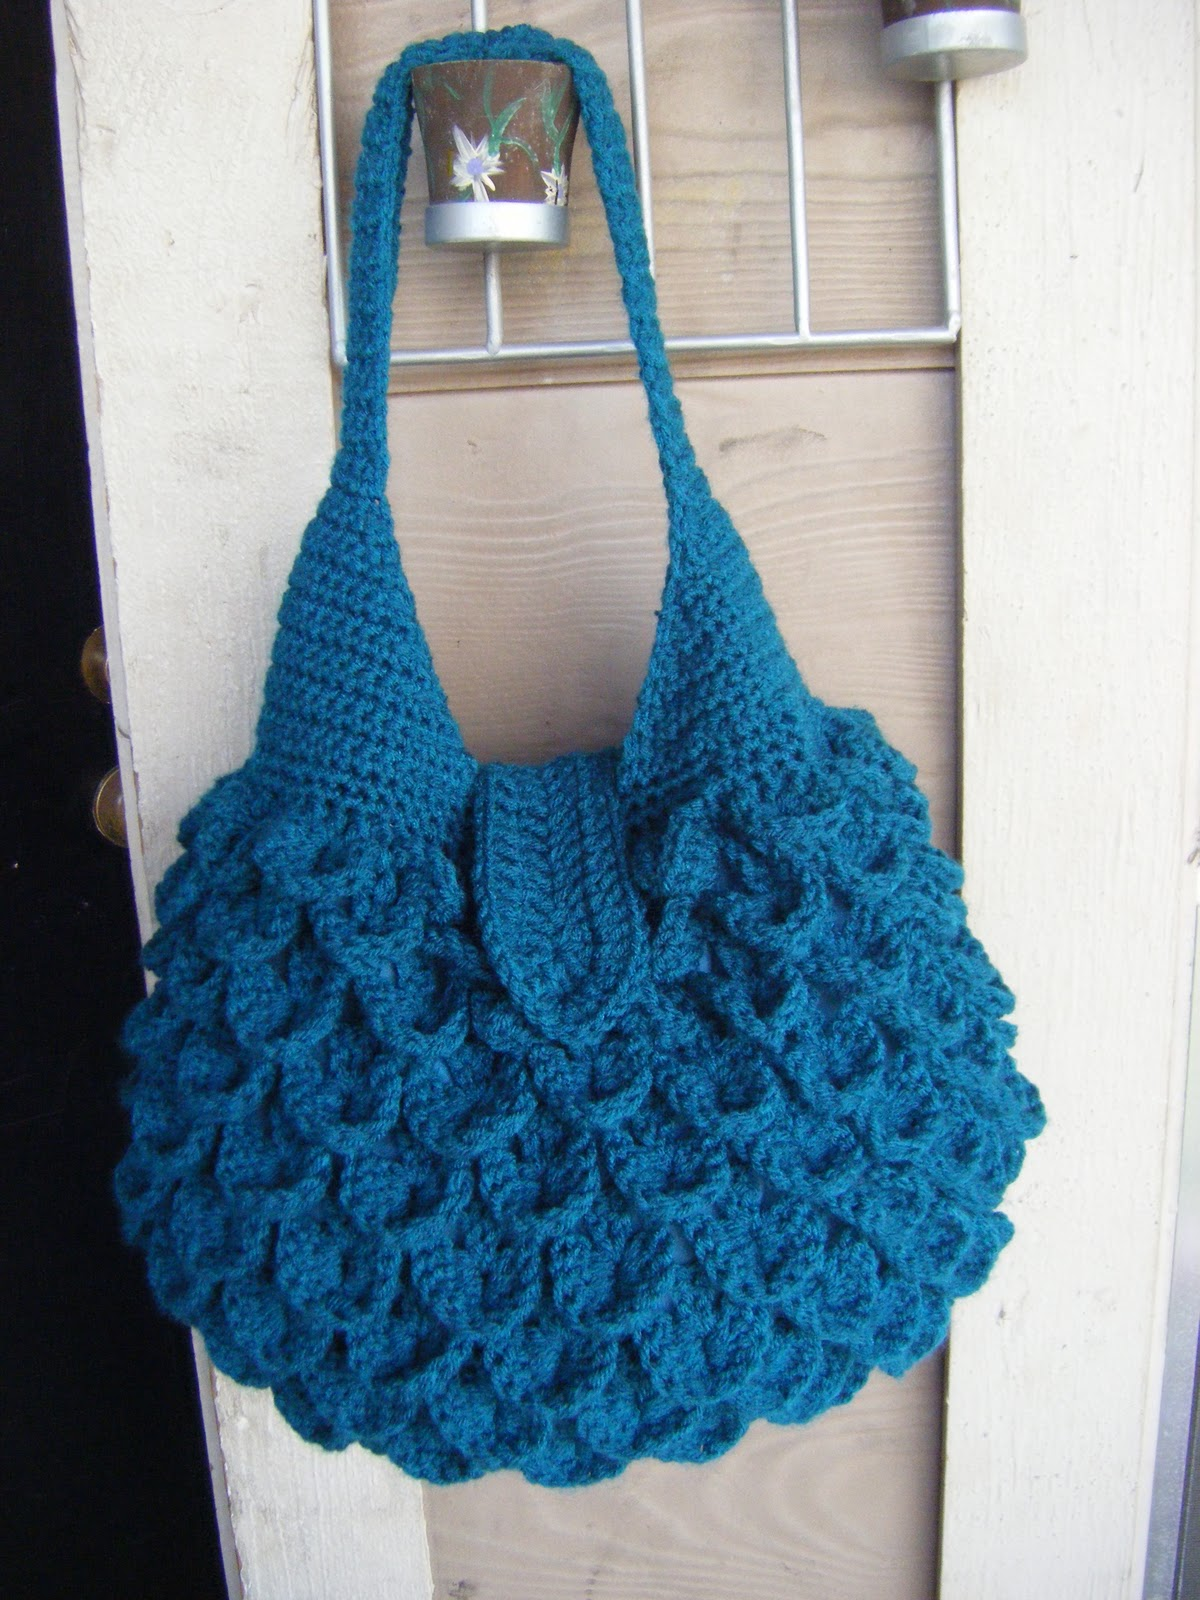 Free Crochet Patterns For Bags And Totes : Best Patterns: Crocodile Crochet Bag PATTERN